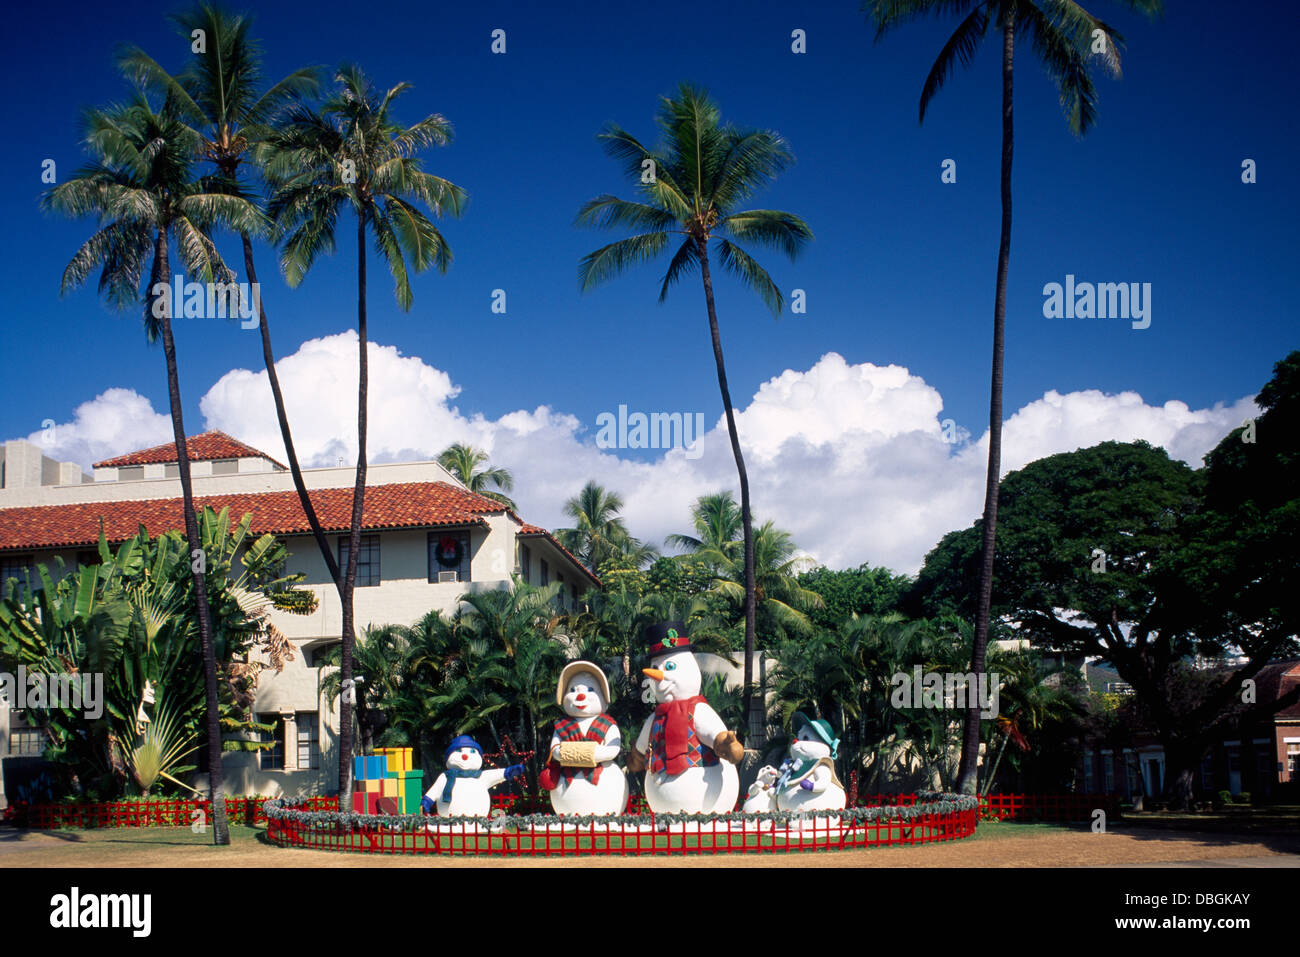 Christmas In Hawaii Decorations.Hawaii Christmas Snowman Family Figures And Decorations